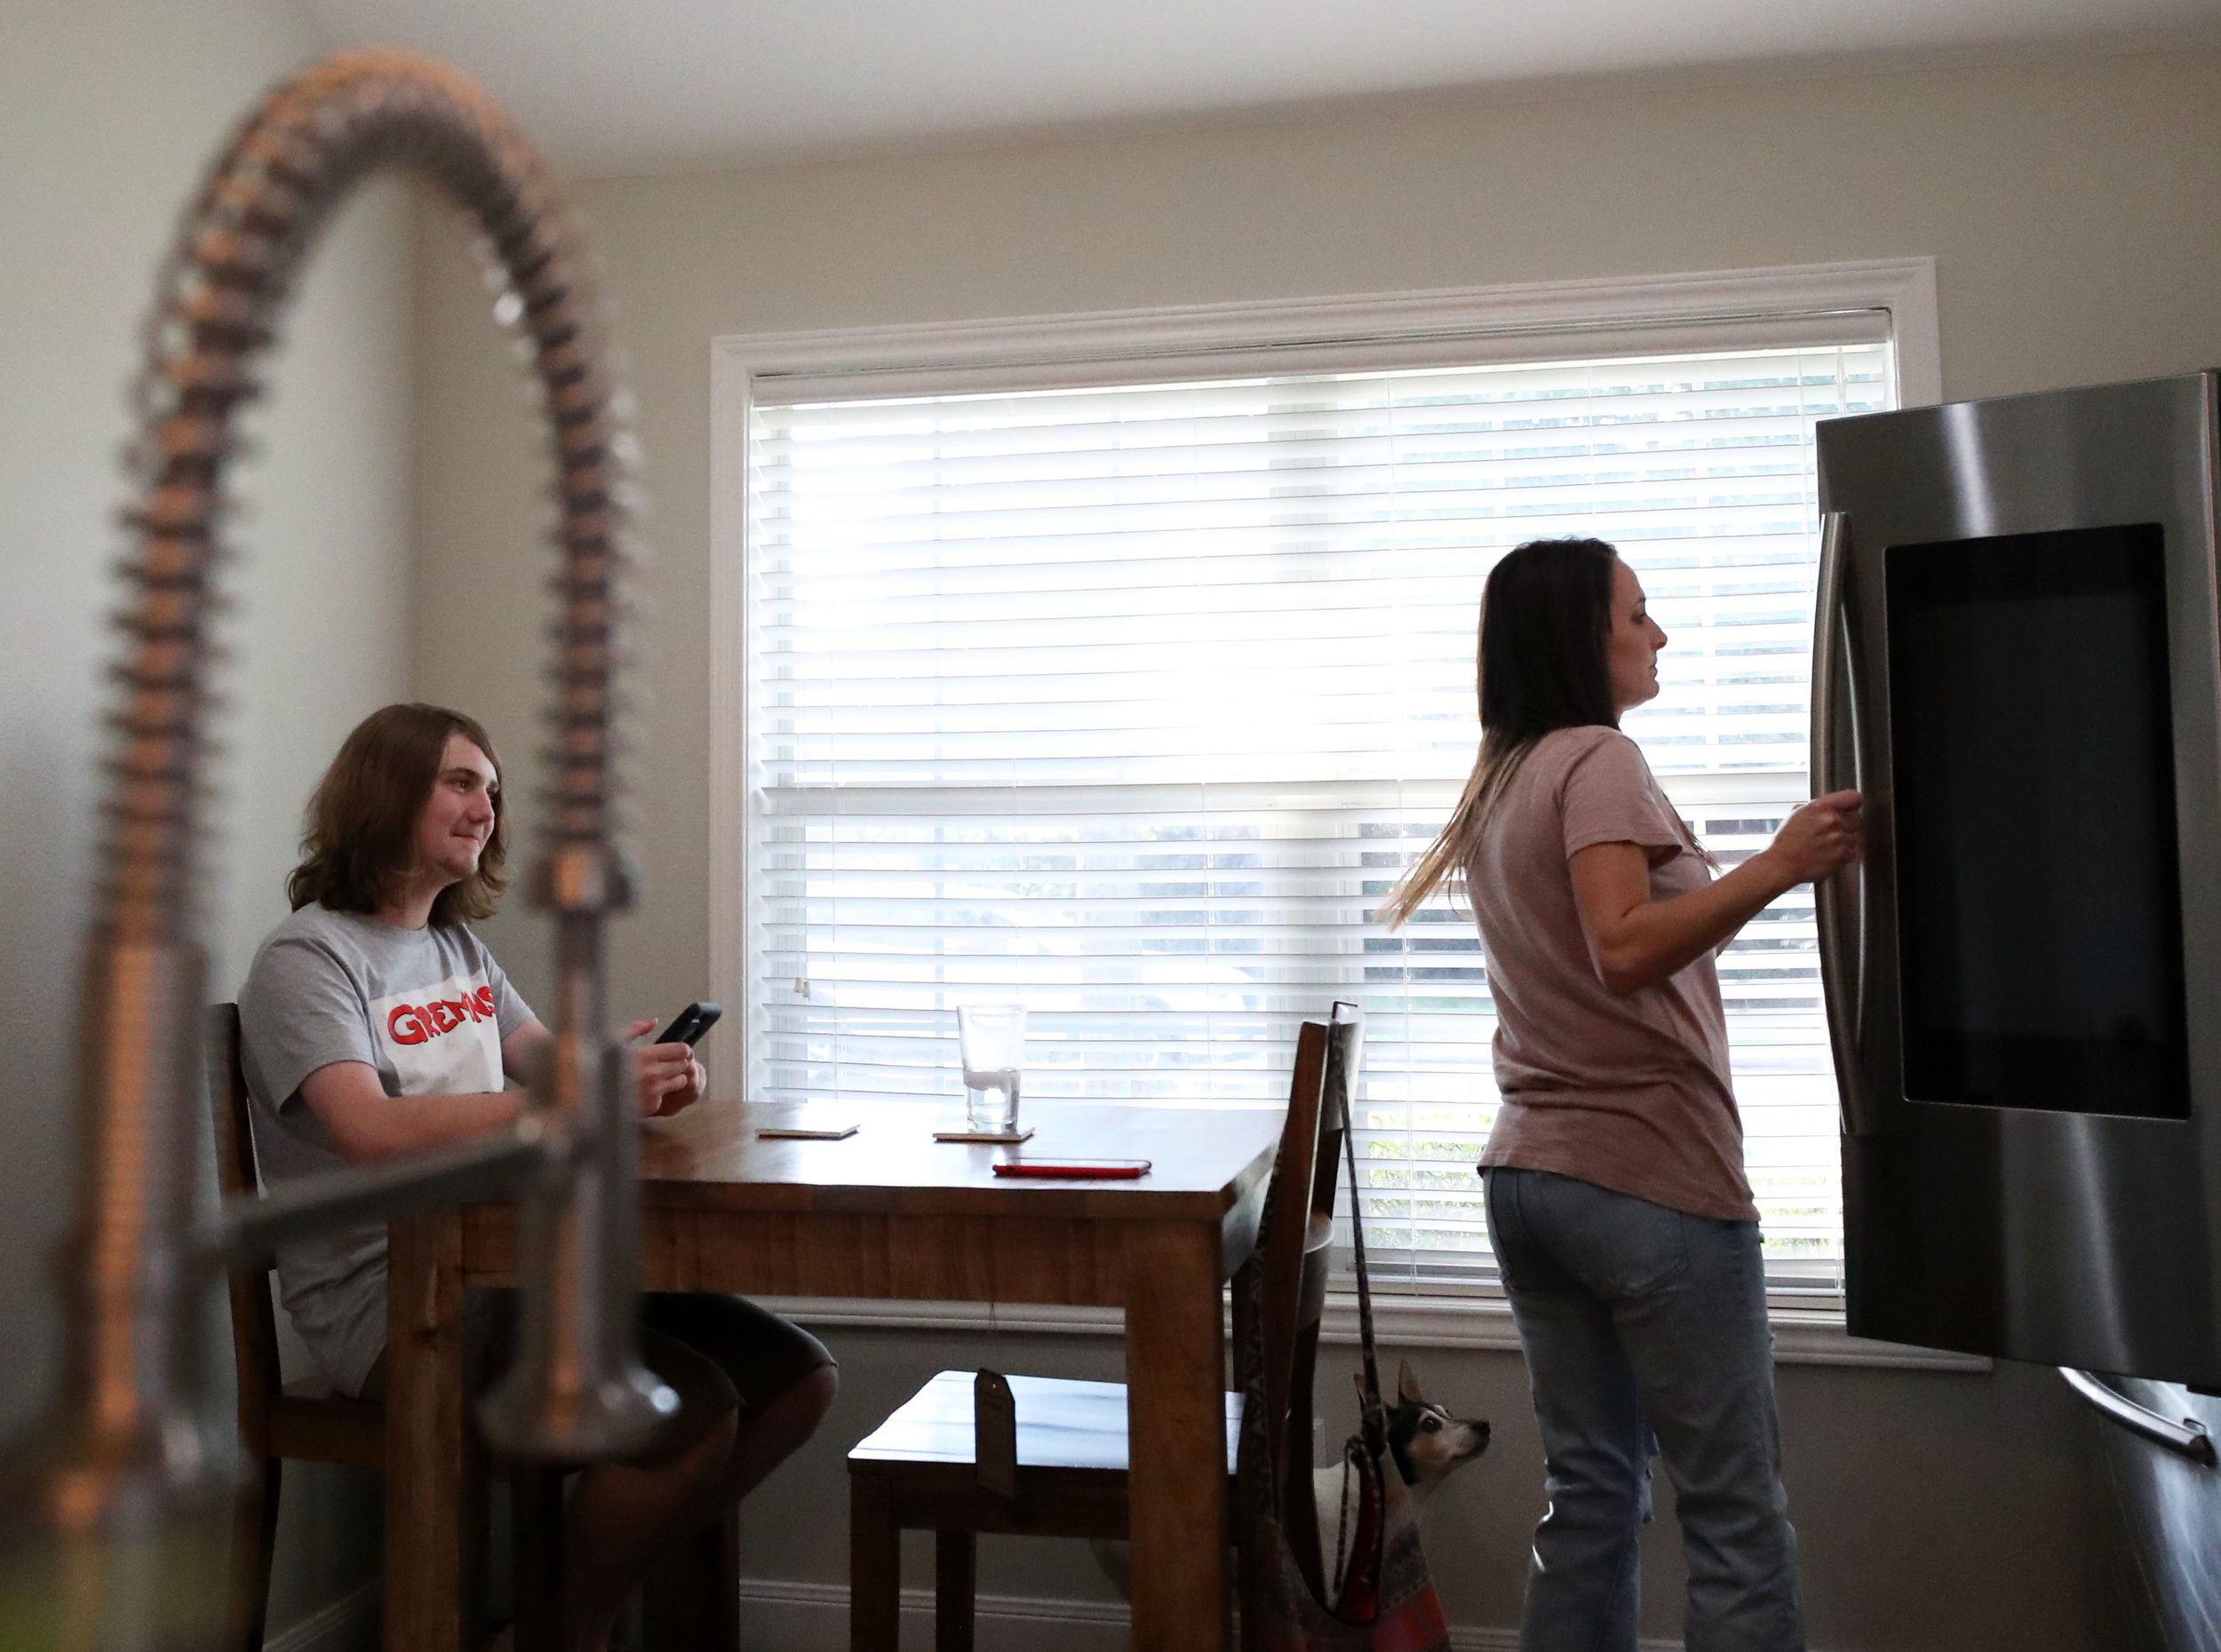 "Jacob Bishop smiles while Tiffany gets dinner ready in their new kitchen on Wednesday, July 25, 2018. ""We had to get used to living in our house together again,"" Tiffany said. ""They adjusted to living with their grandparents and got into a routine there."" Jacob had to be reenrolled into Dickinson High School for his junior year since his address was different last year due to Hurricane Harvey."